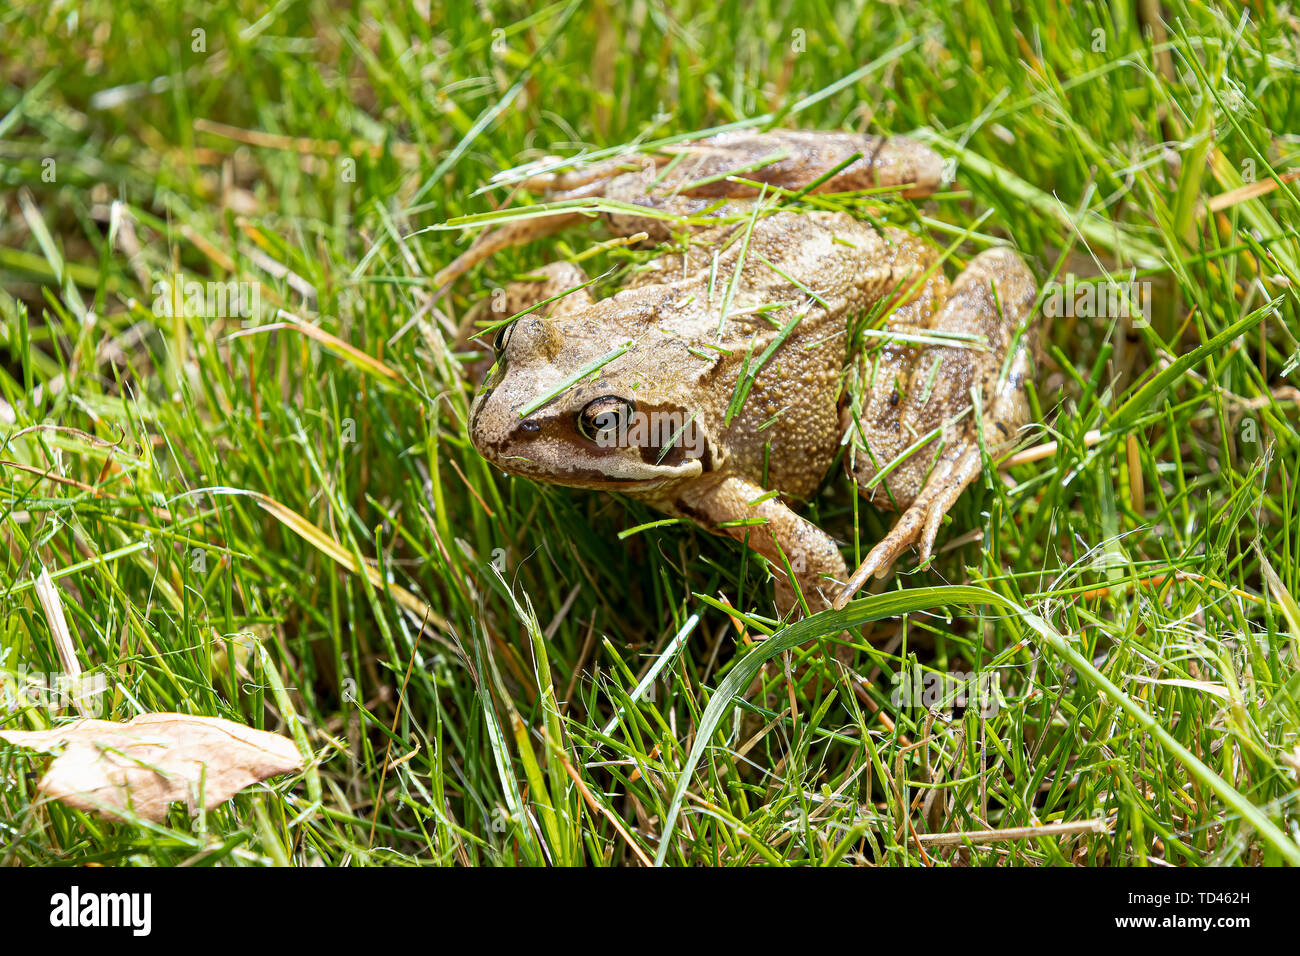 Common frog in amongst some grass on a sunny day - Stock Image